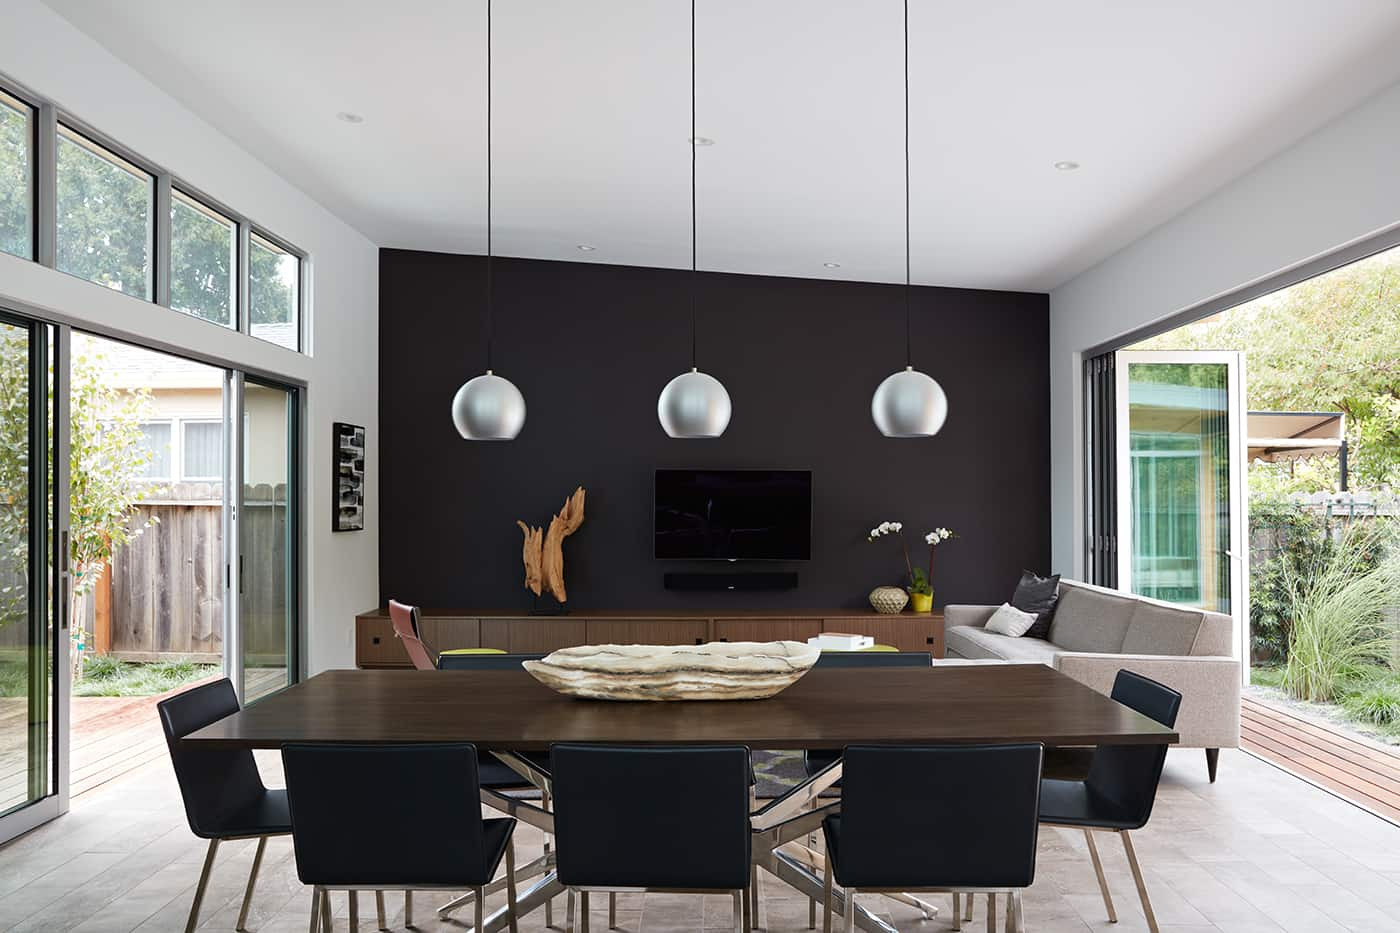 Eichler house San Carlos California_Klopf architect - dining area